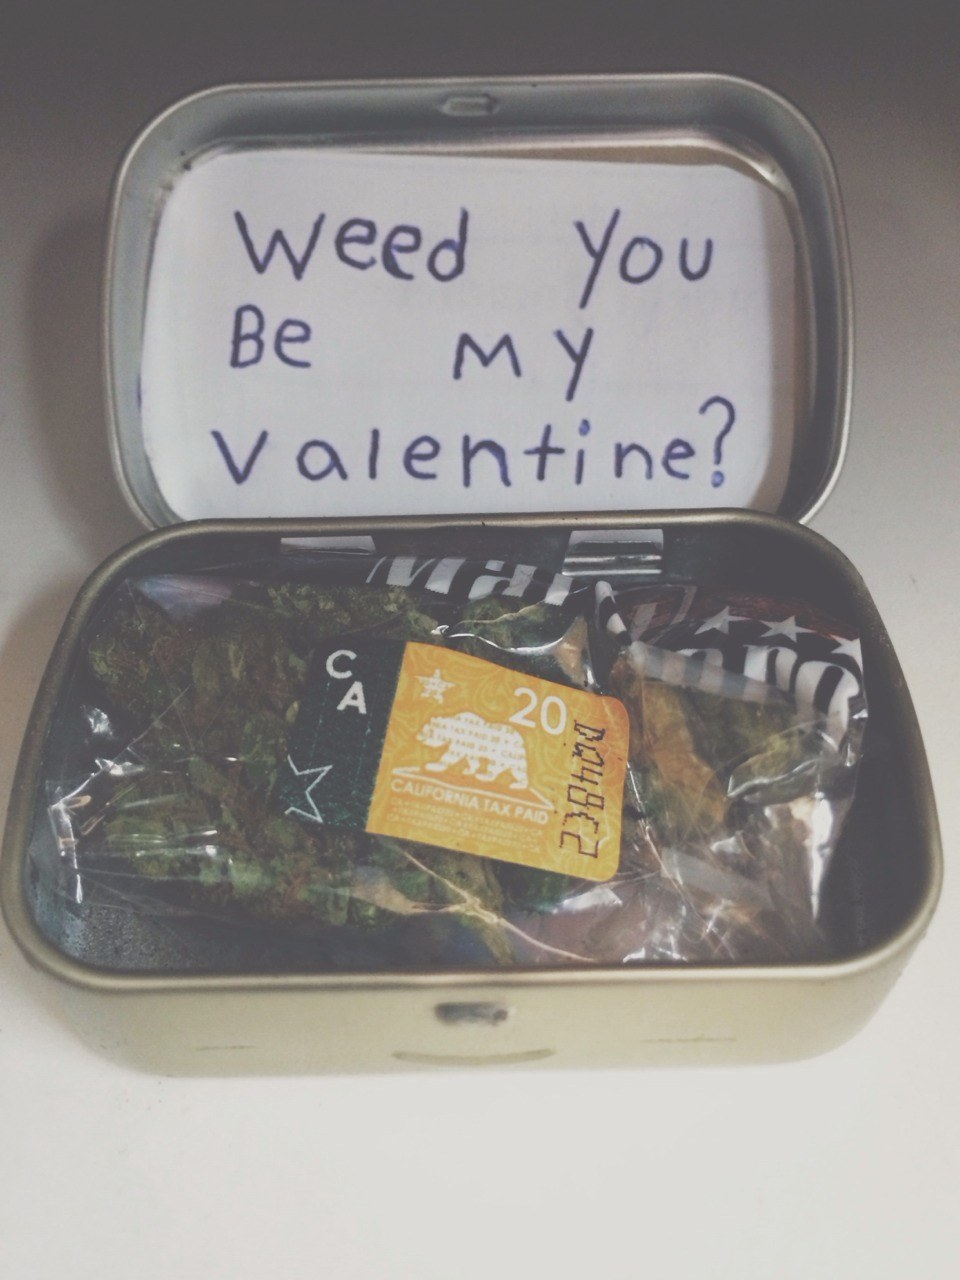 Cute ideas for asking a girl out